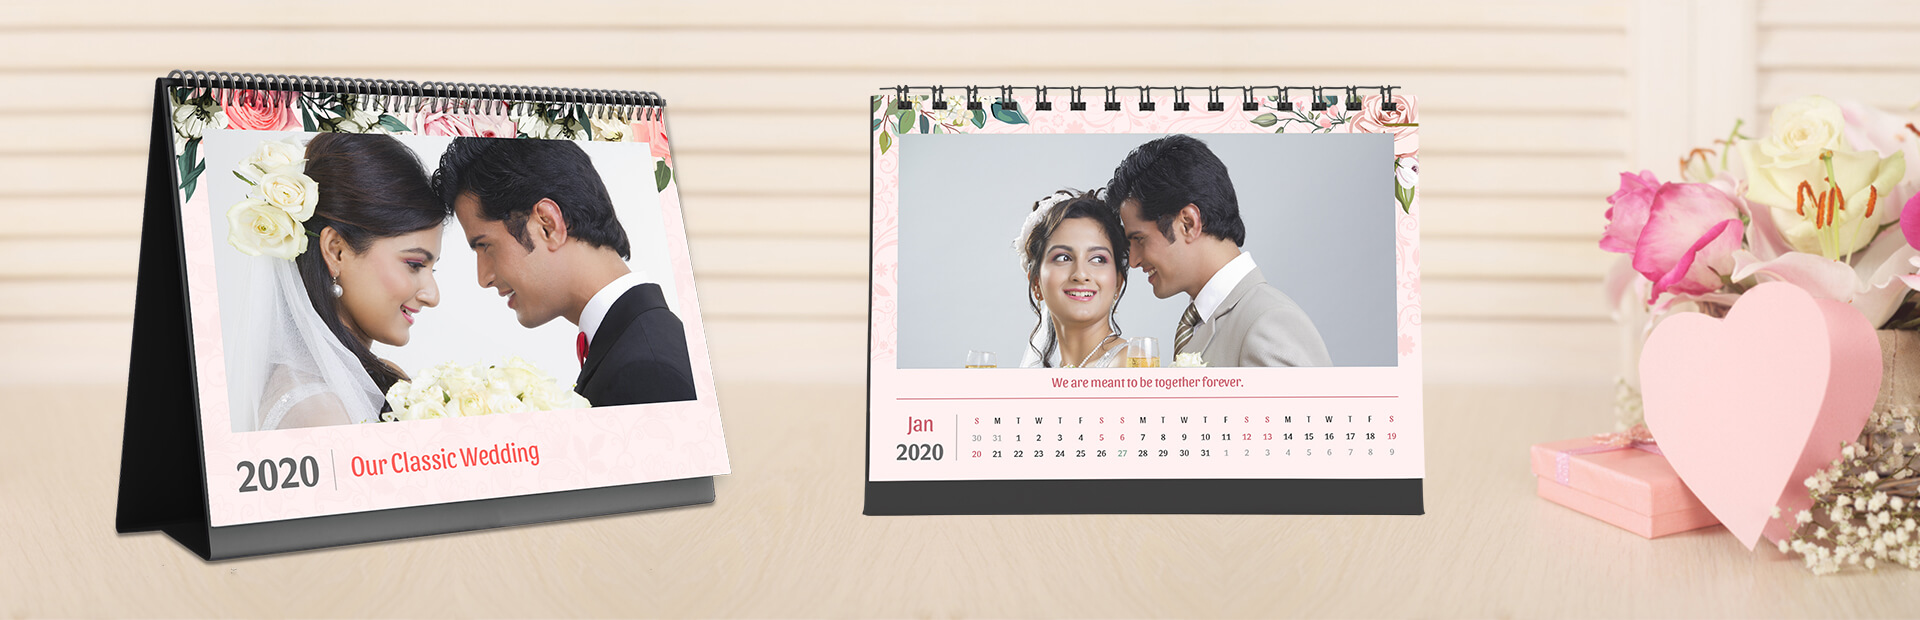 Wedding Classic Photo Calendars Online